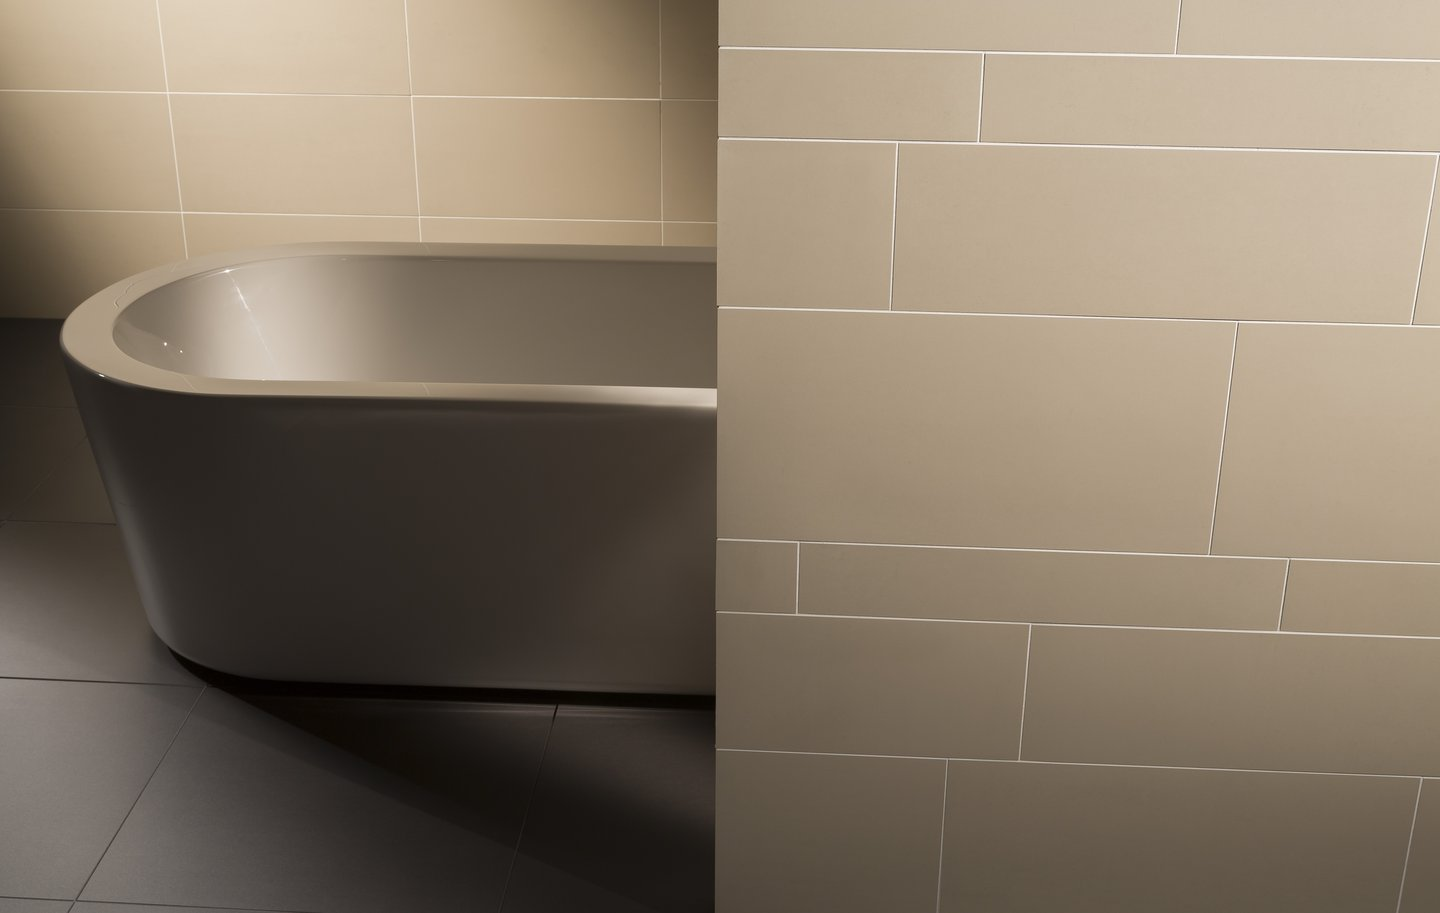 Johnson tiles ceramic wall floor tiles our product ranges are available in a wealth of sizes and styles floor and wall options to ensure seamless co ordination for hospitality residential and dailygadgetfo Choice Image